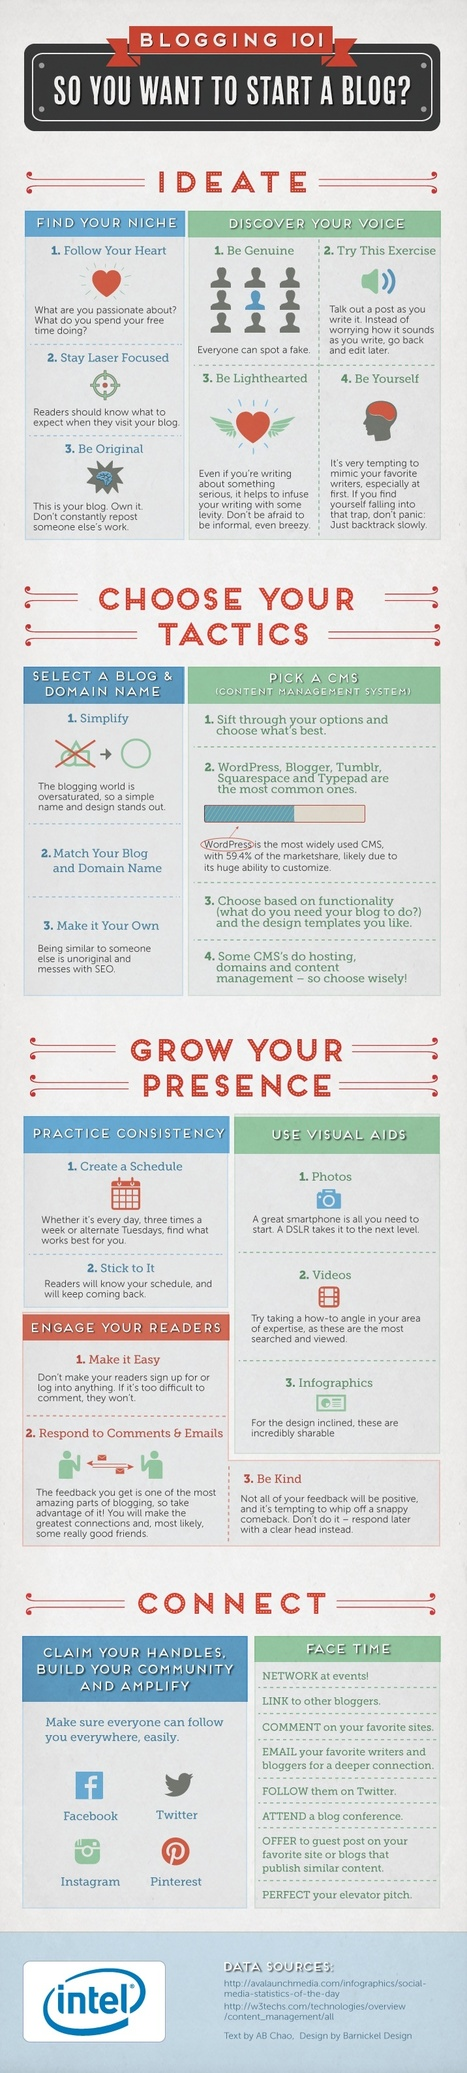 So You Want To Start A Blog? (Infographic) | KB...Konnected's  Kaleidoscope of  Wonderful Websites! | Scoop.it